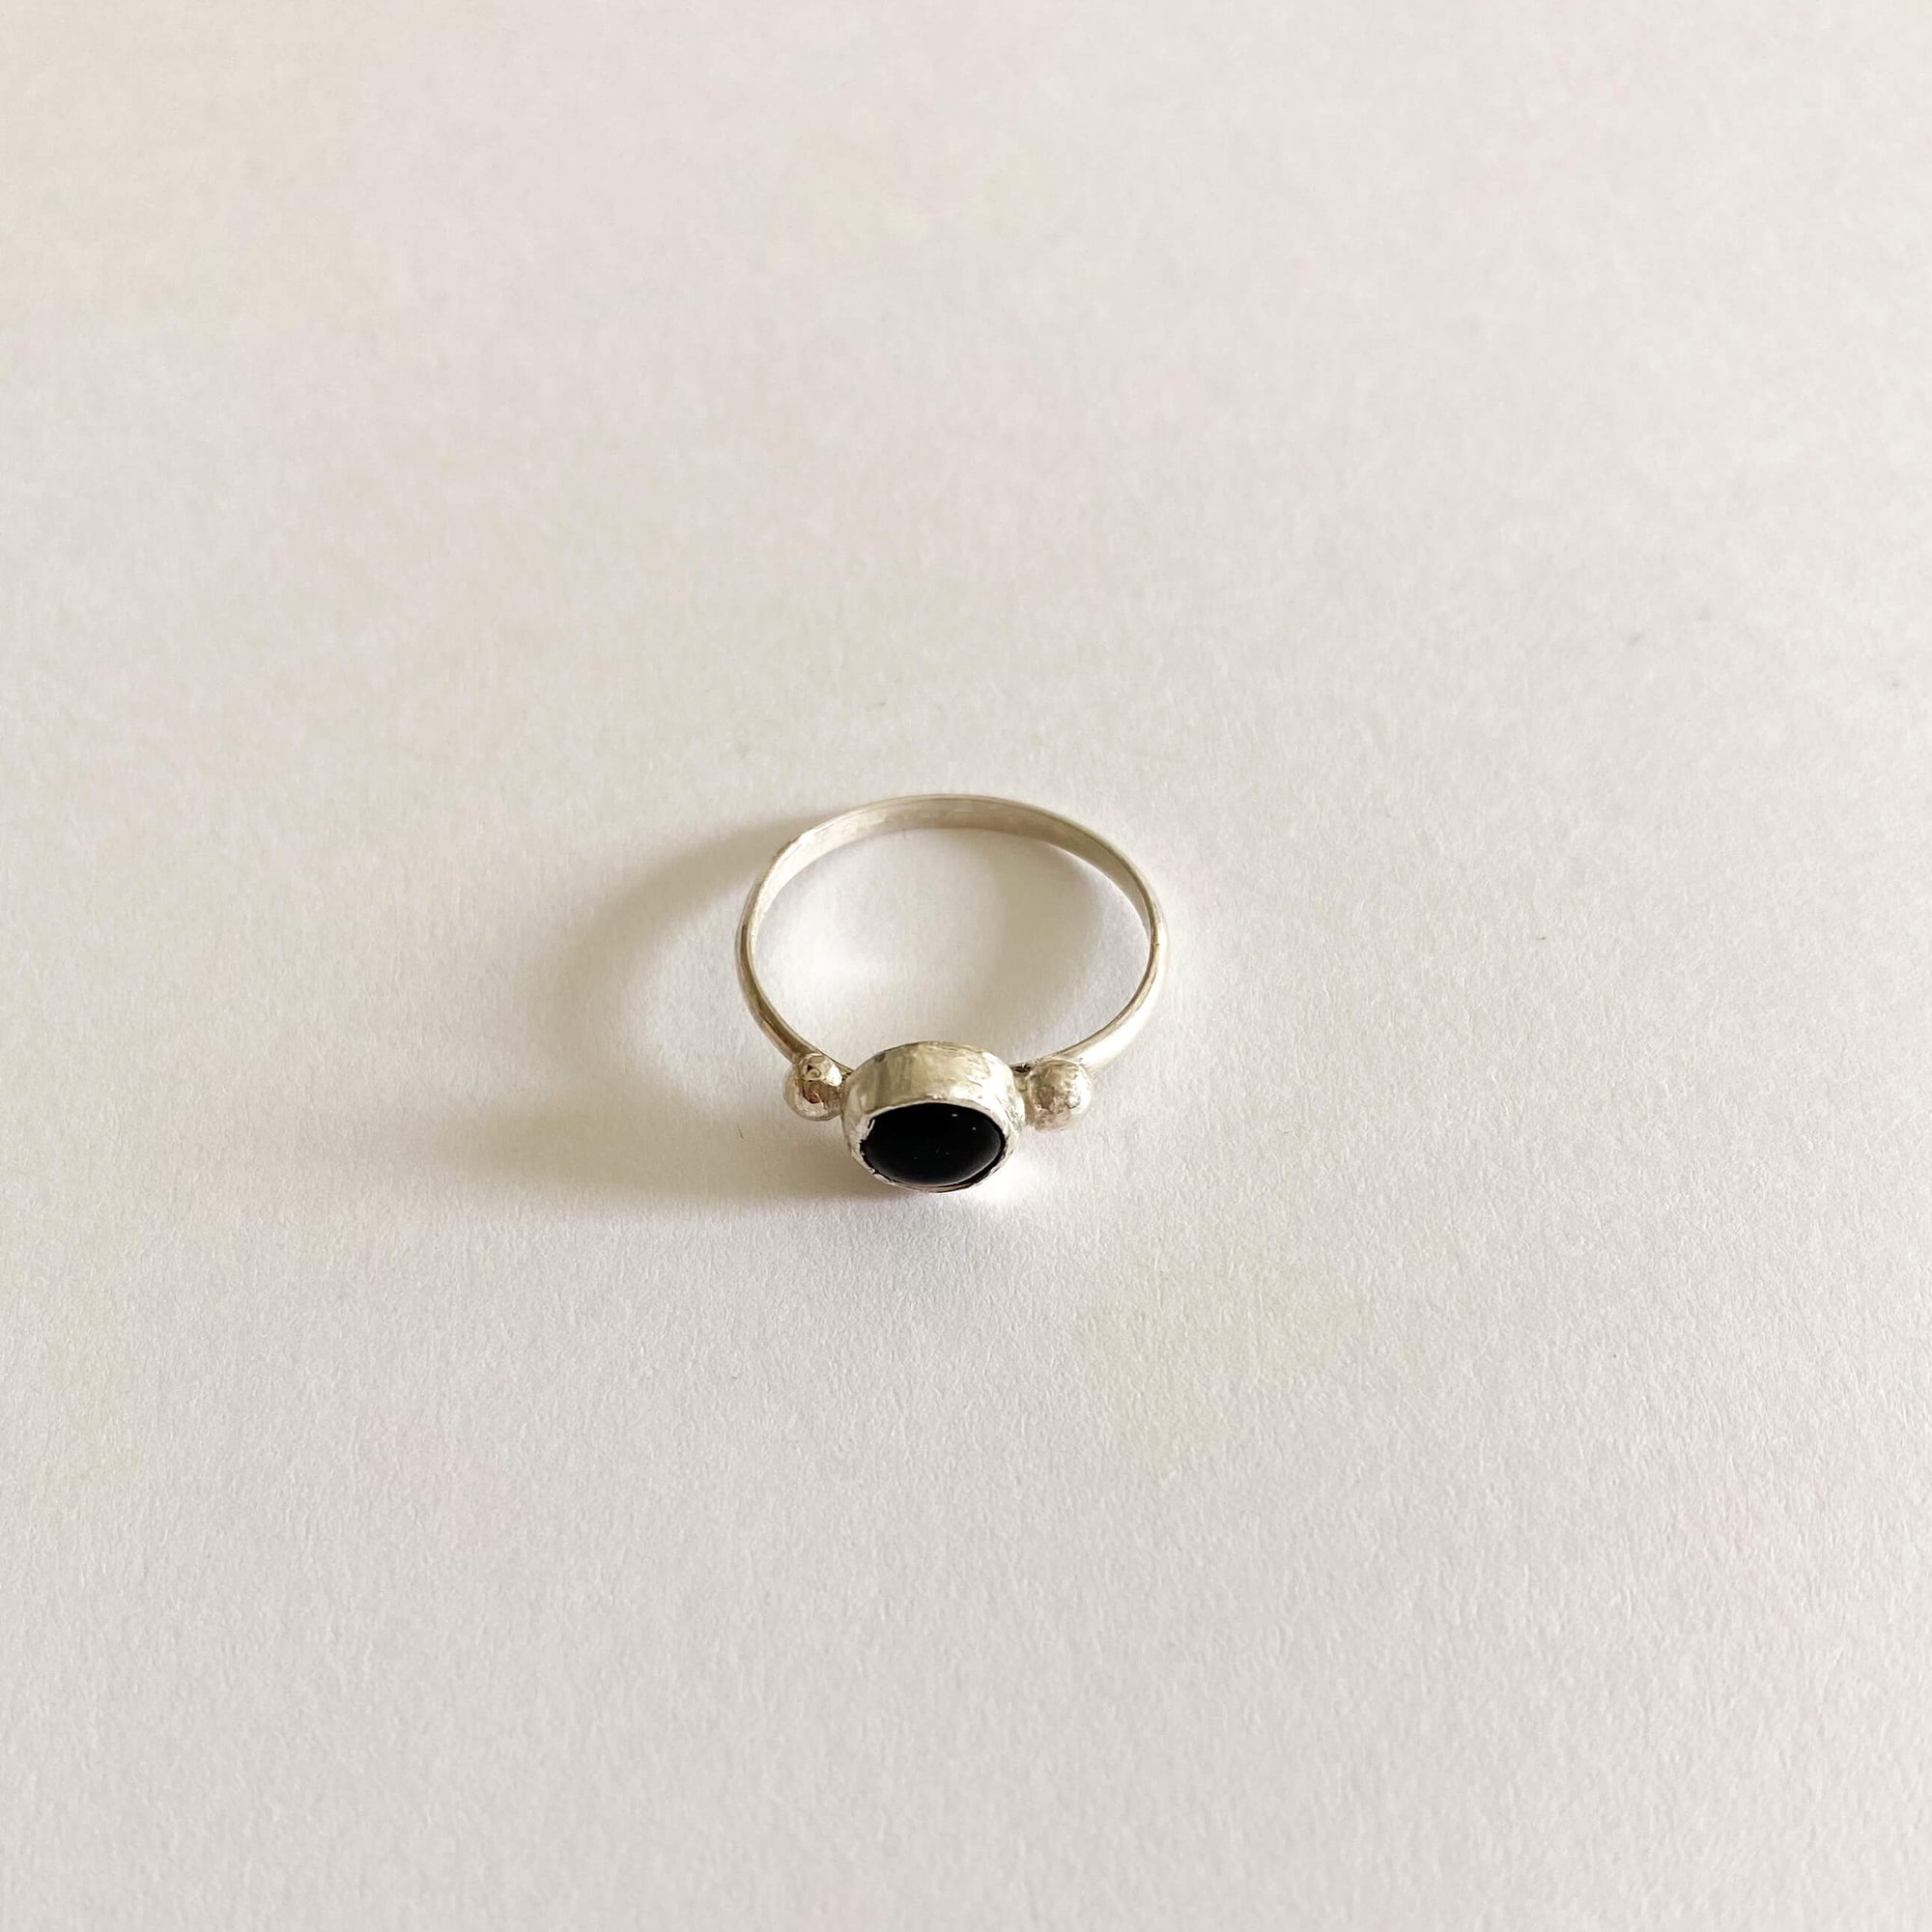 Obsidian Sterling Silver Ring